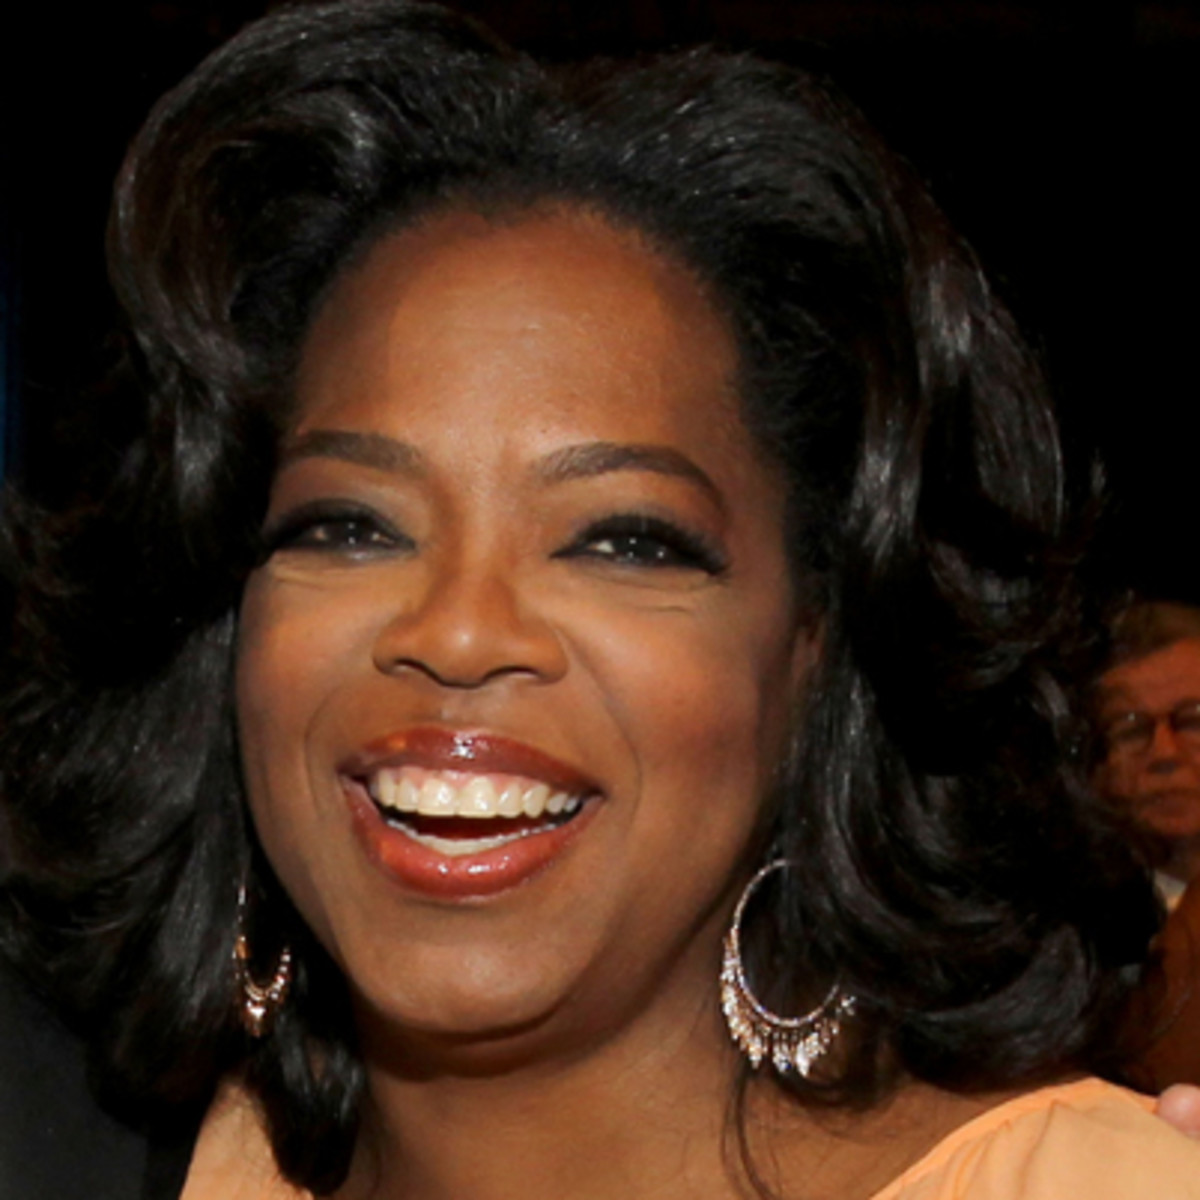 oprah winfrey talk show host actress producer television oprah winfrey talk show host actress producer television producer film actor film actress philanthropist film actress com